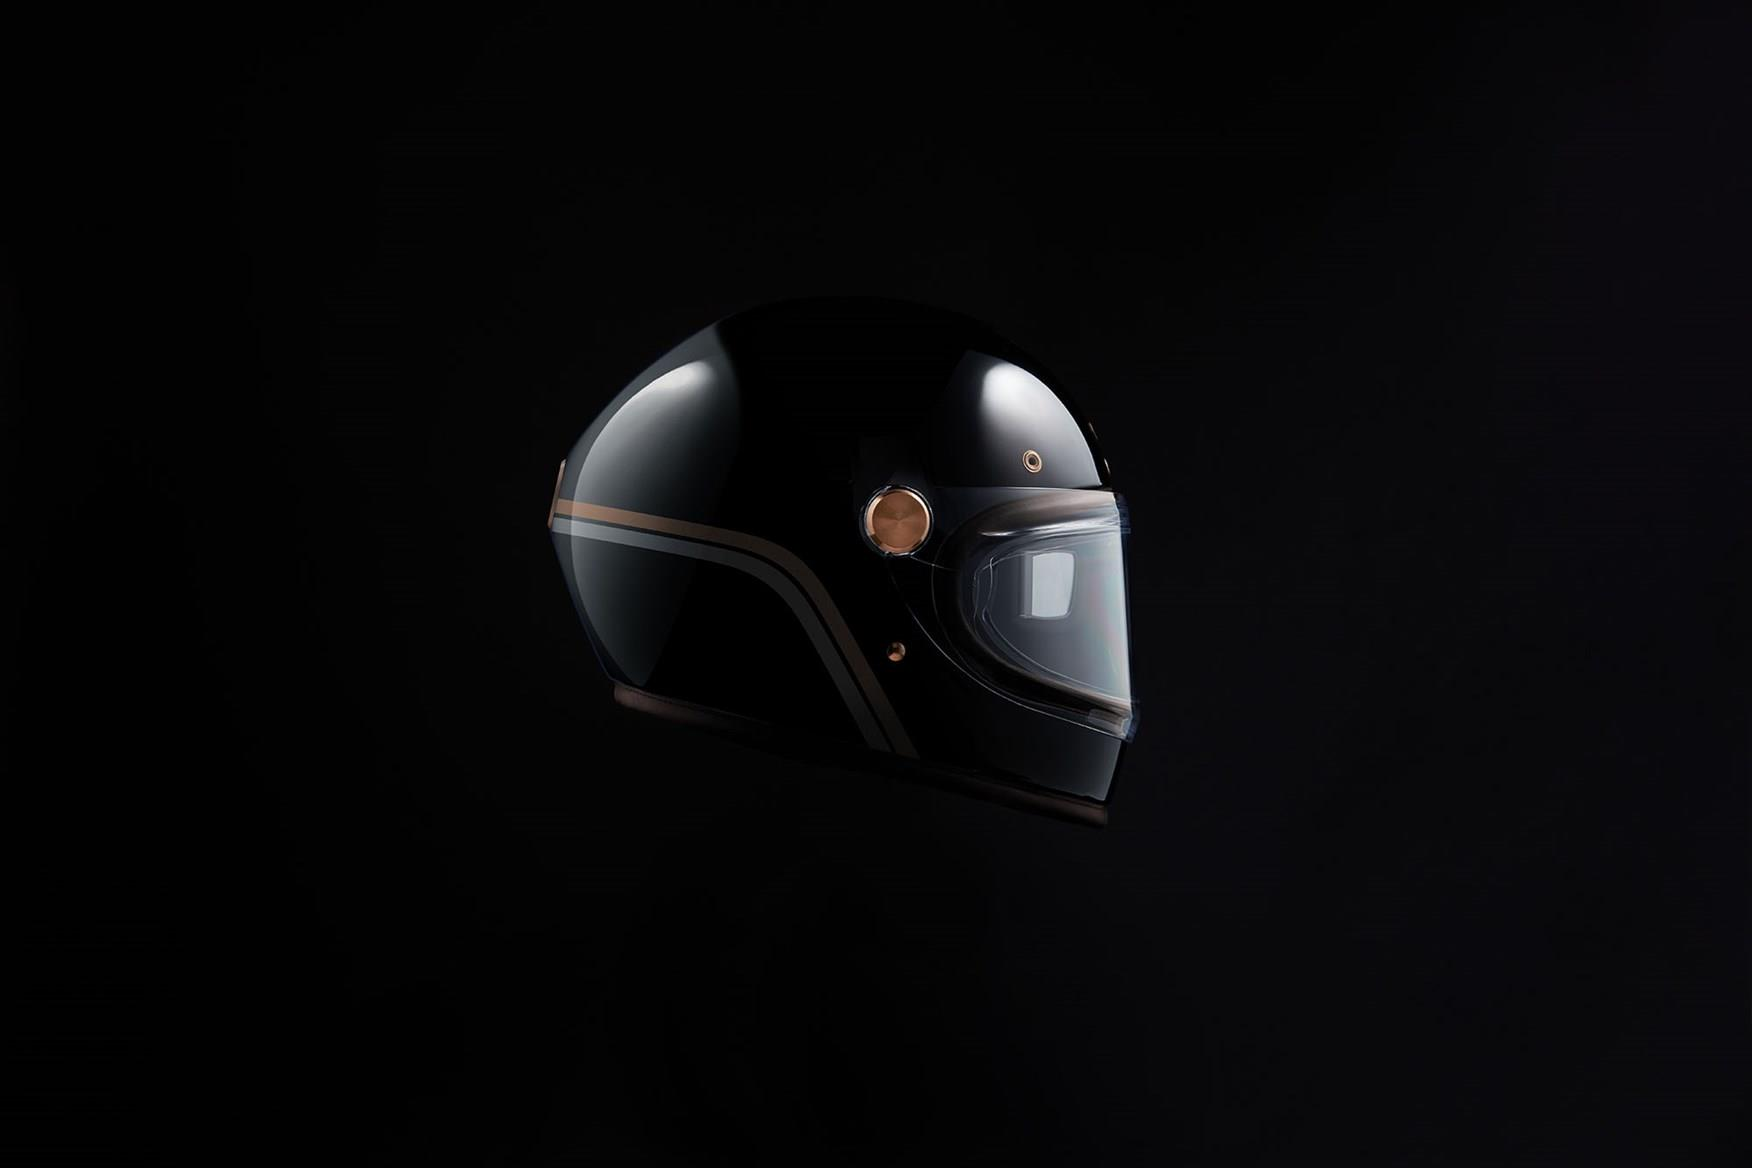 The Arc comes with a bespoke helmet with HUD